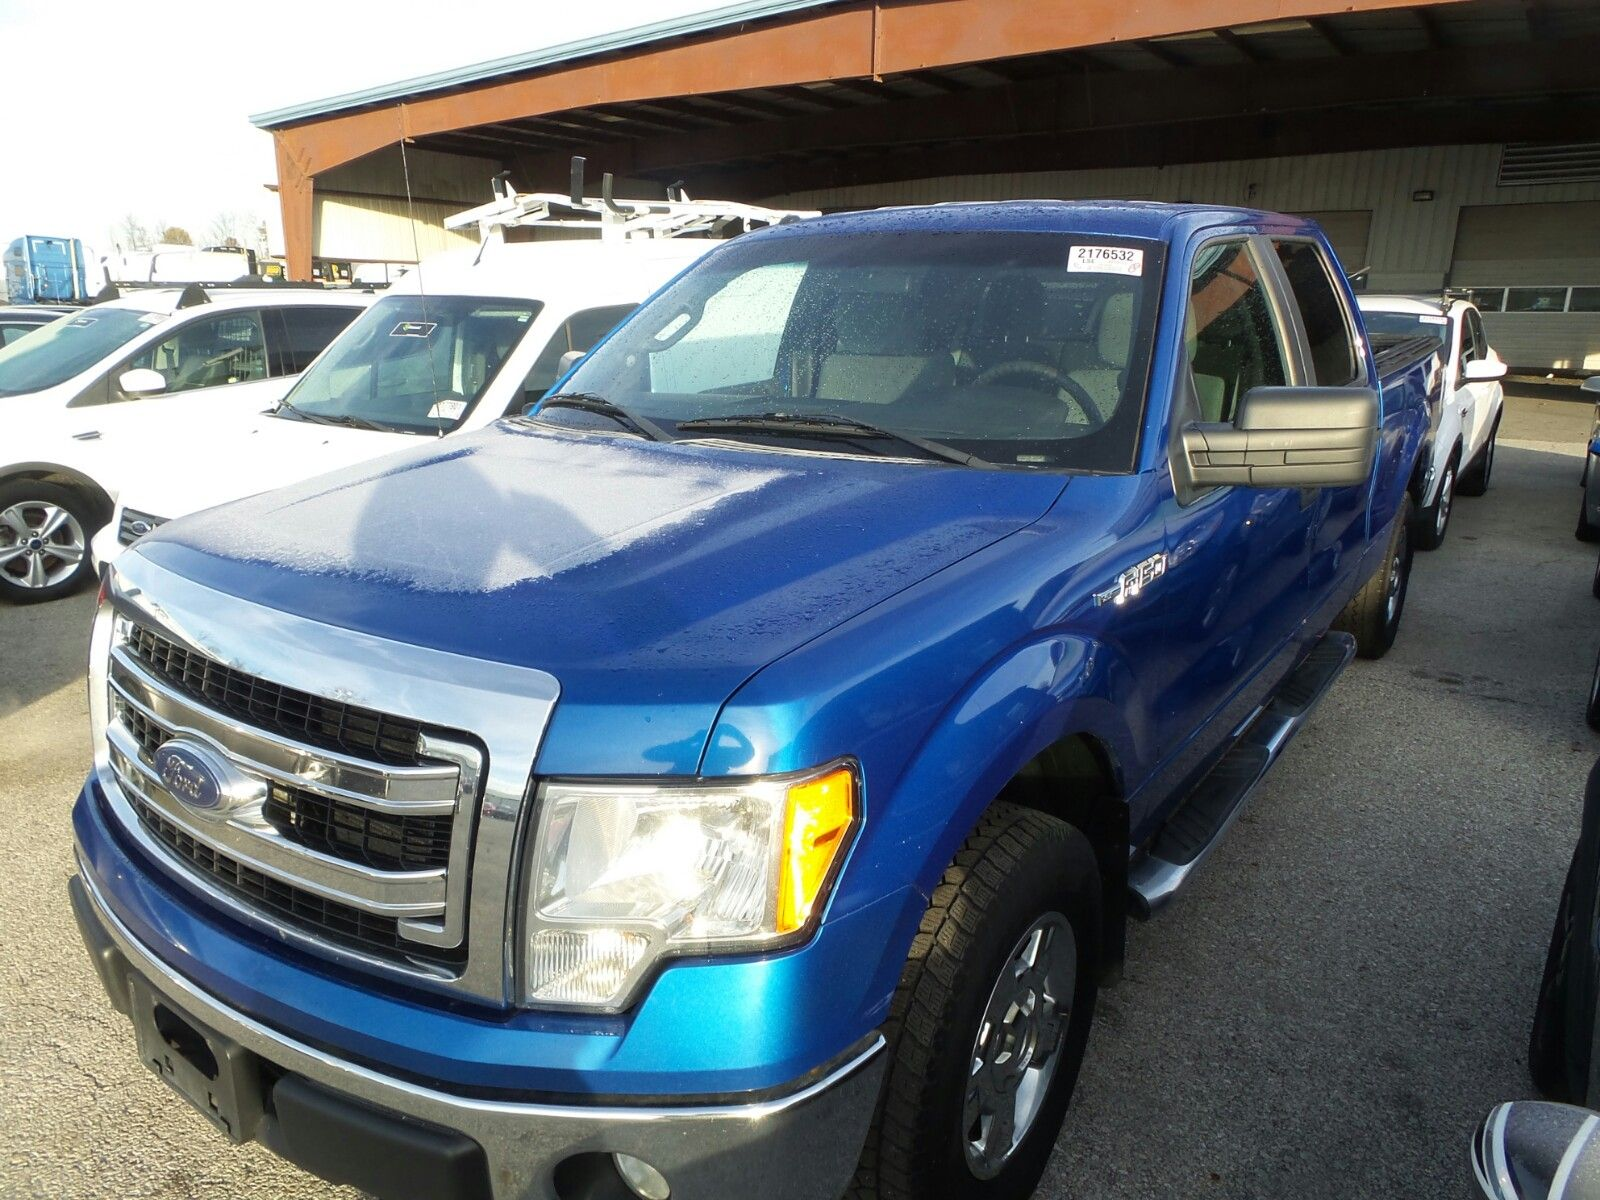 2014 Ford F150 4x4 Cr Specifications And Details For Vin Cruise Control 1ftfw1ef0ekd22841